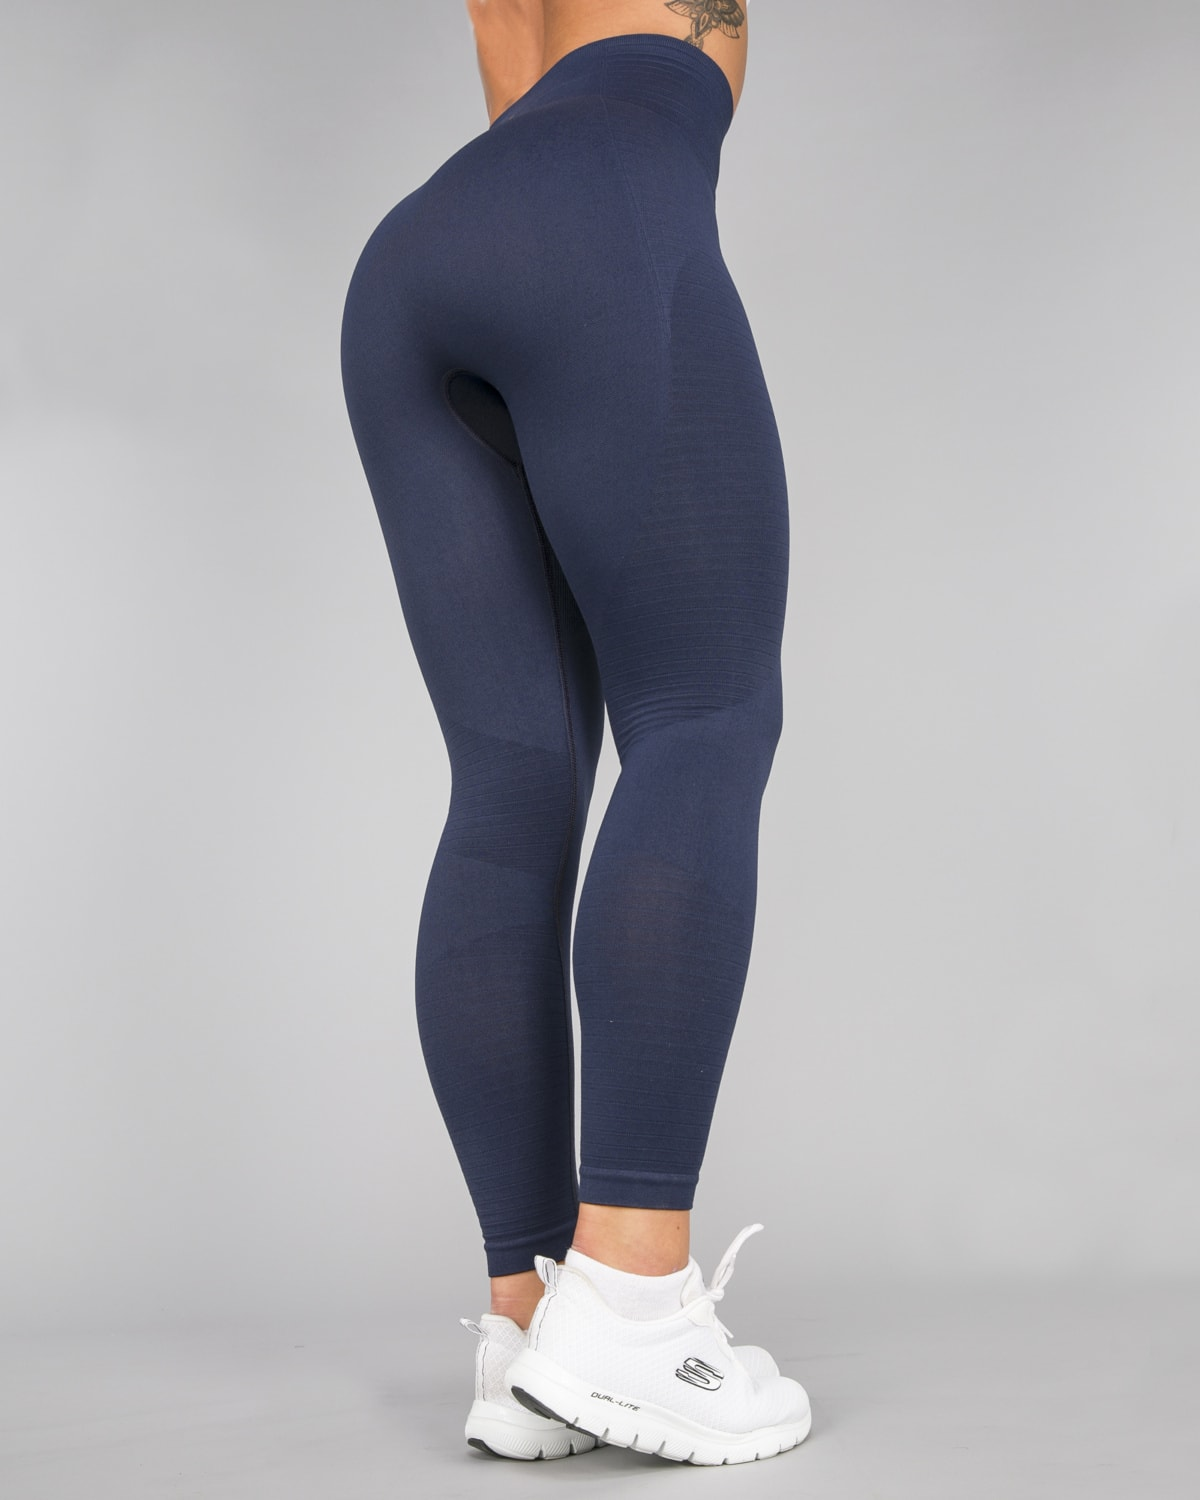 Jerf Gela 2.0 tights Navy Blue25